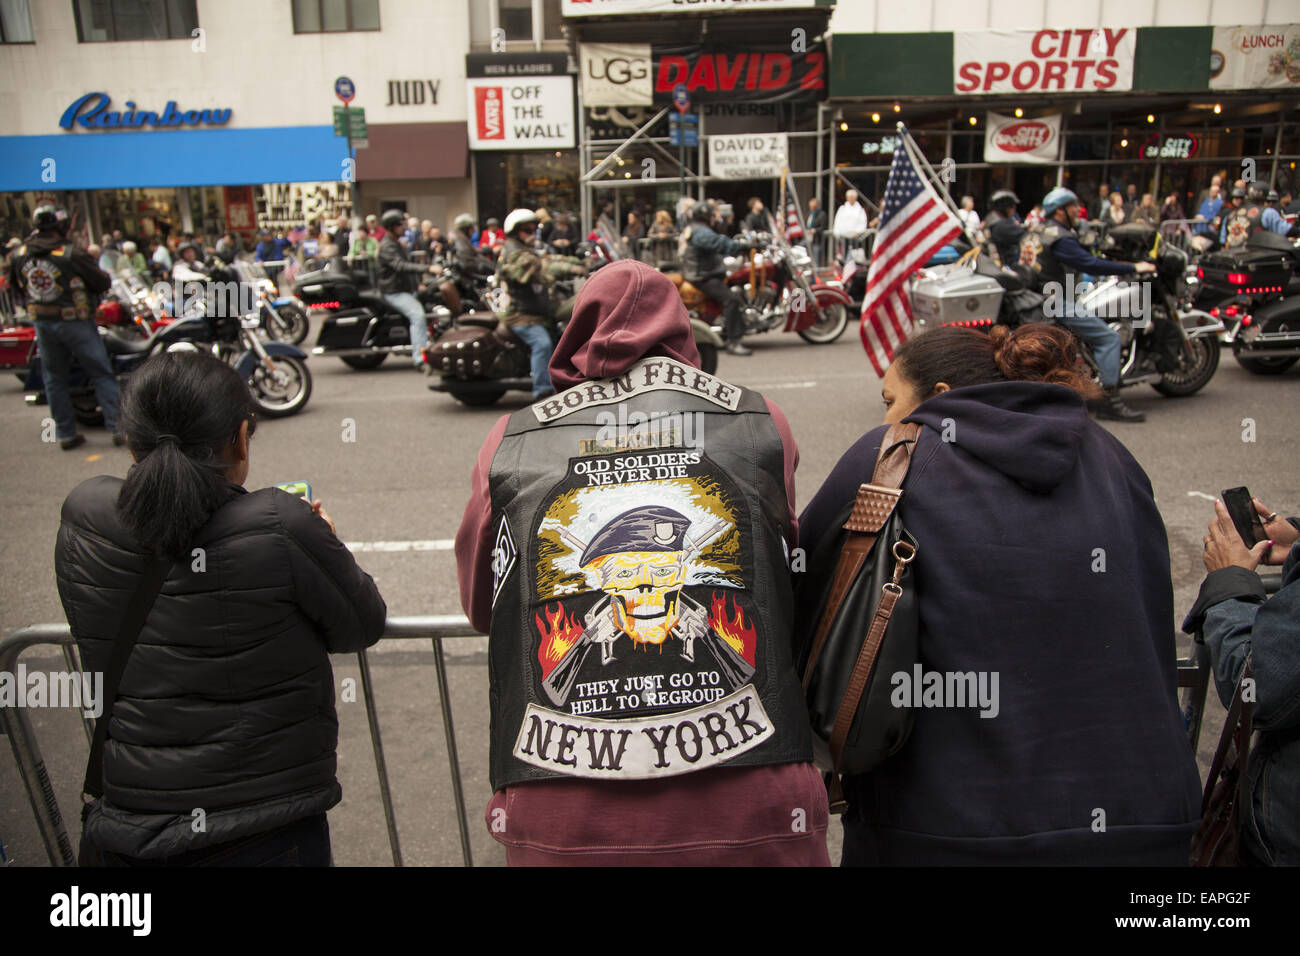 Veterans Day Parade, 5th Ave., New York City. Military vet watches as motorcyclist vets pass by. - Stock Image